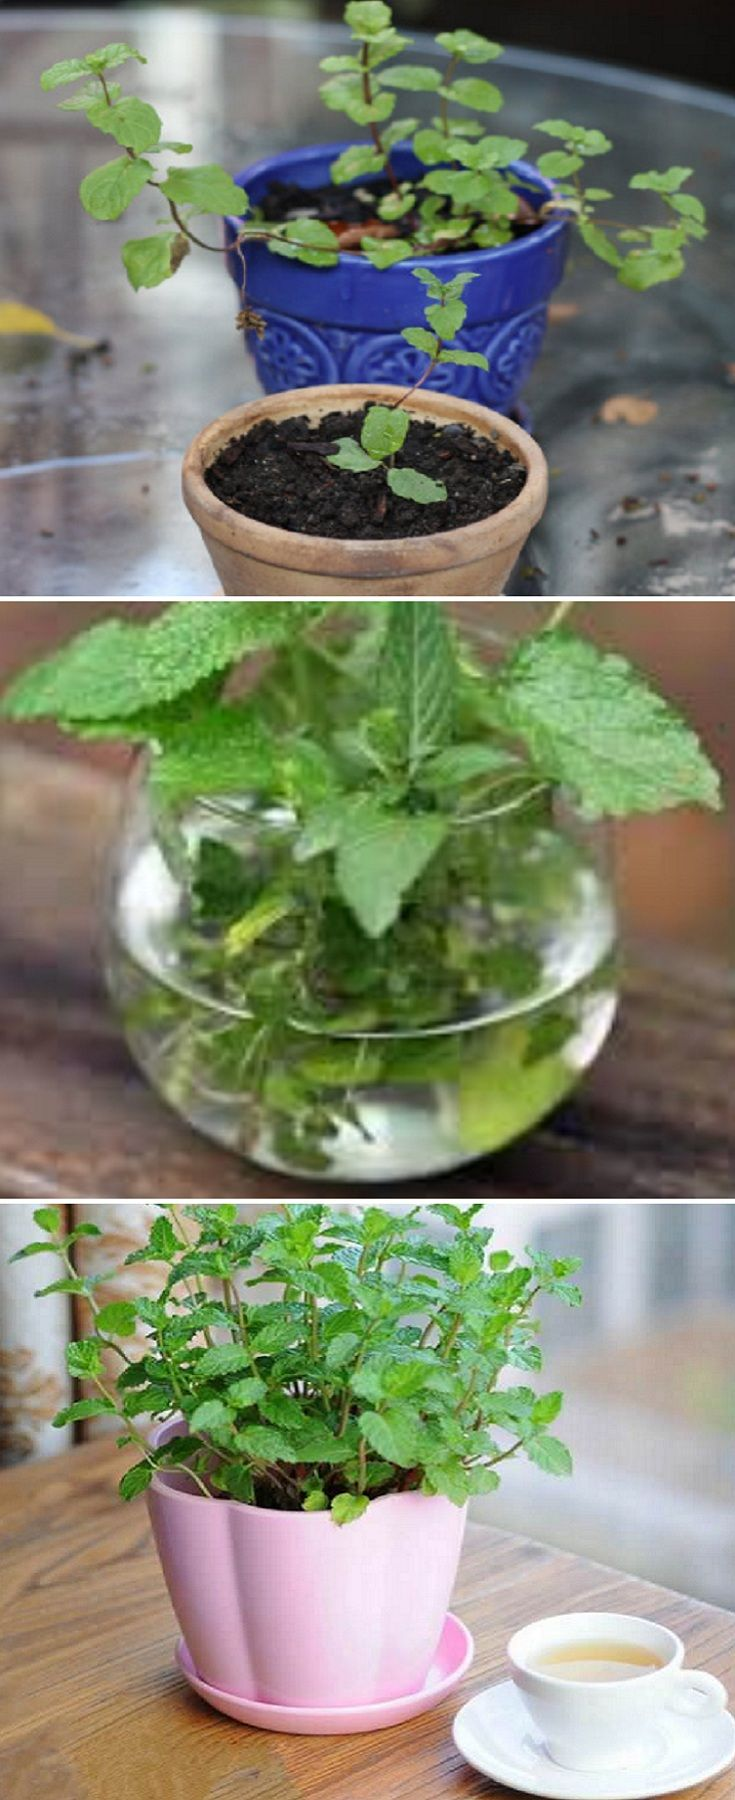 How To Grow Mint Indoors The Most Effective Growing Steps Growing Mint Indoors Gardening Tips Growing Mint Indoors Growing Mint Growing Food Indoors